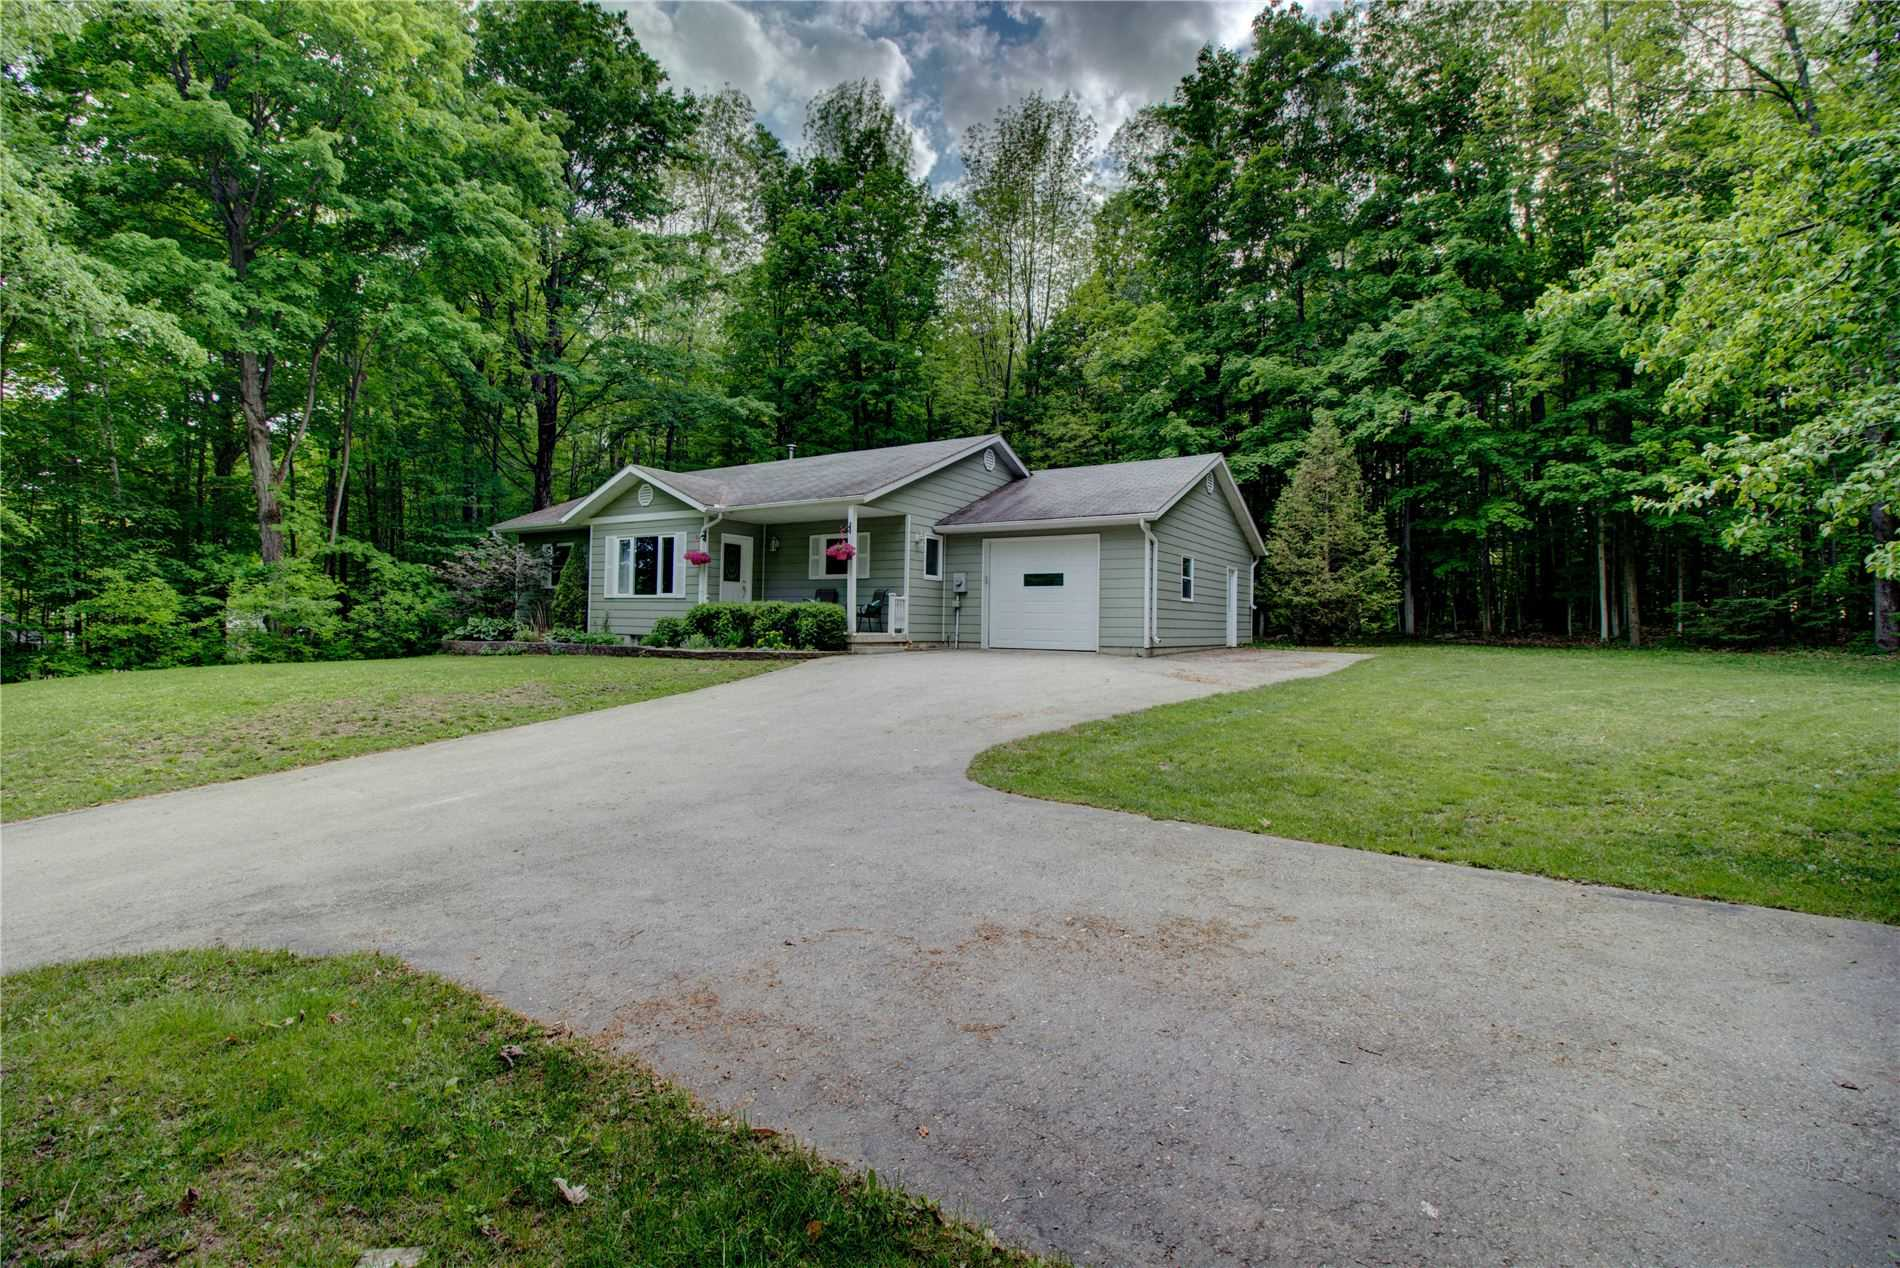 pictures of house for sale MLS: X4779029 located at 24 Shore Dr, South Bruce Peninsula N0H1A0